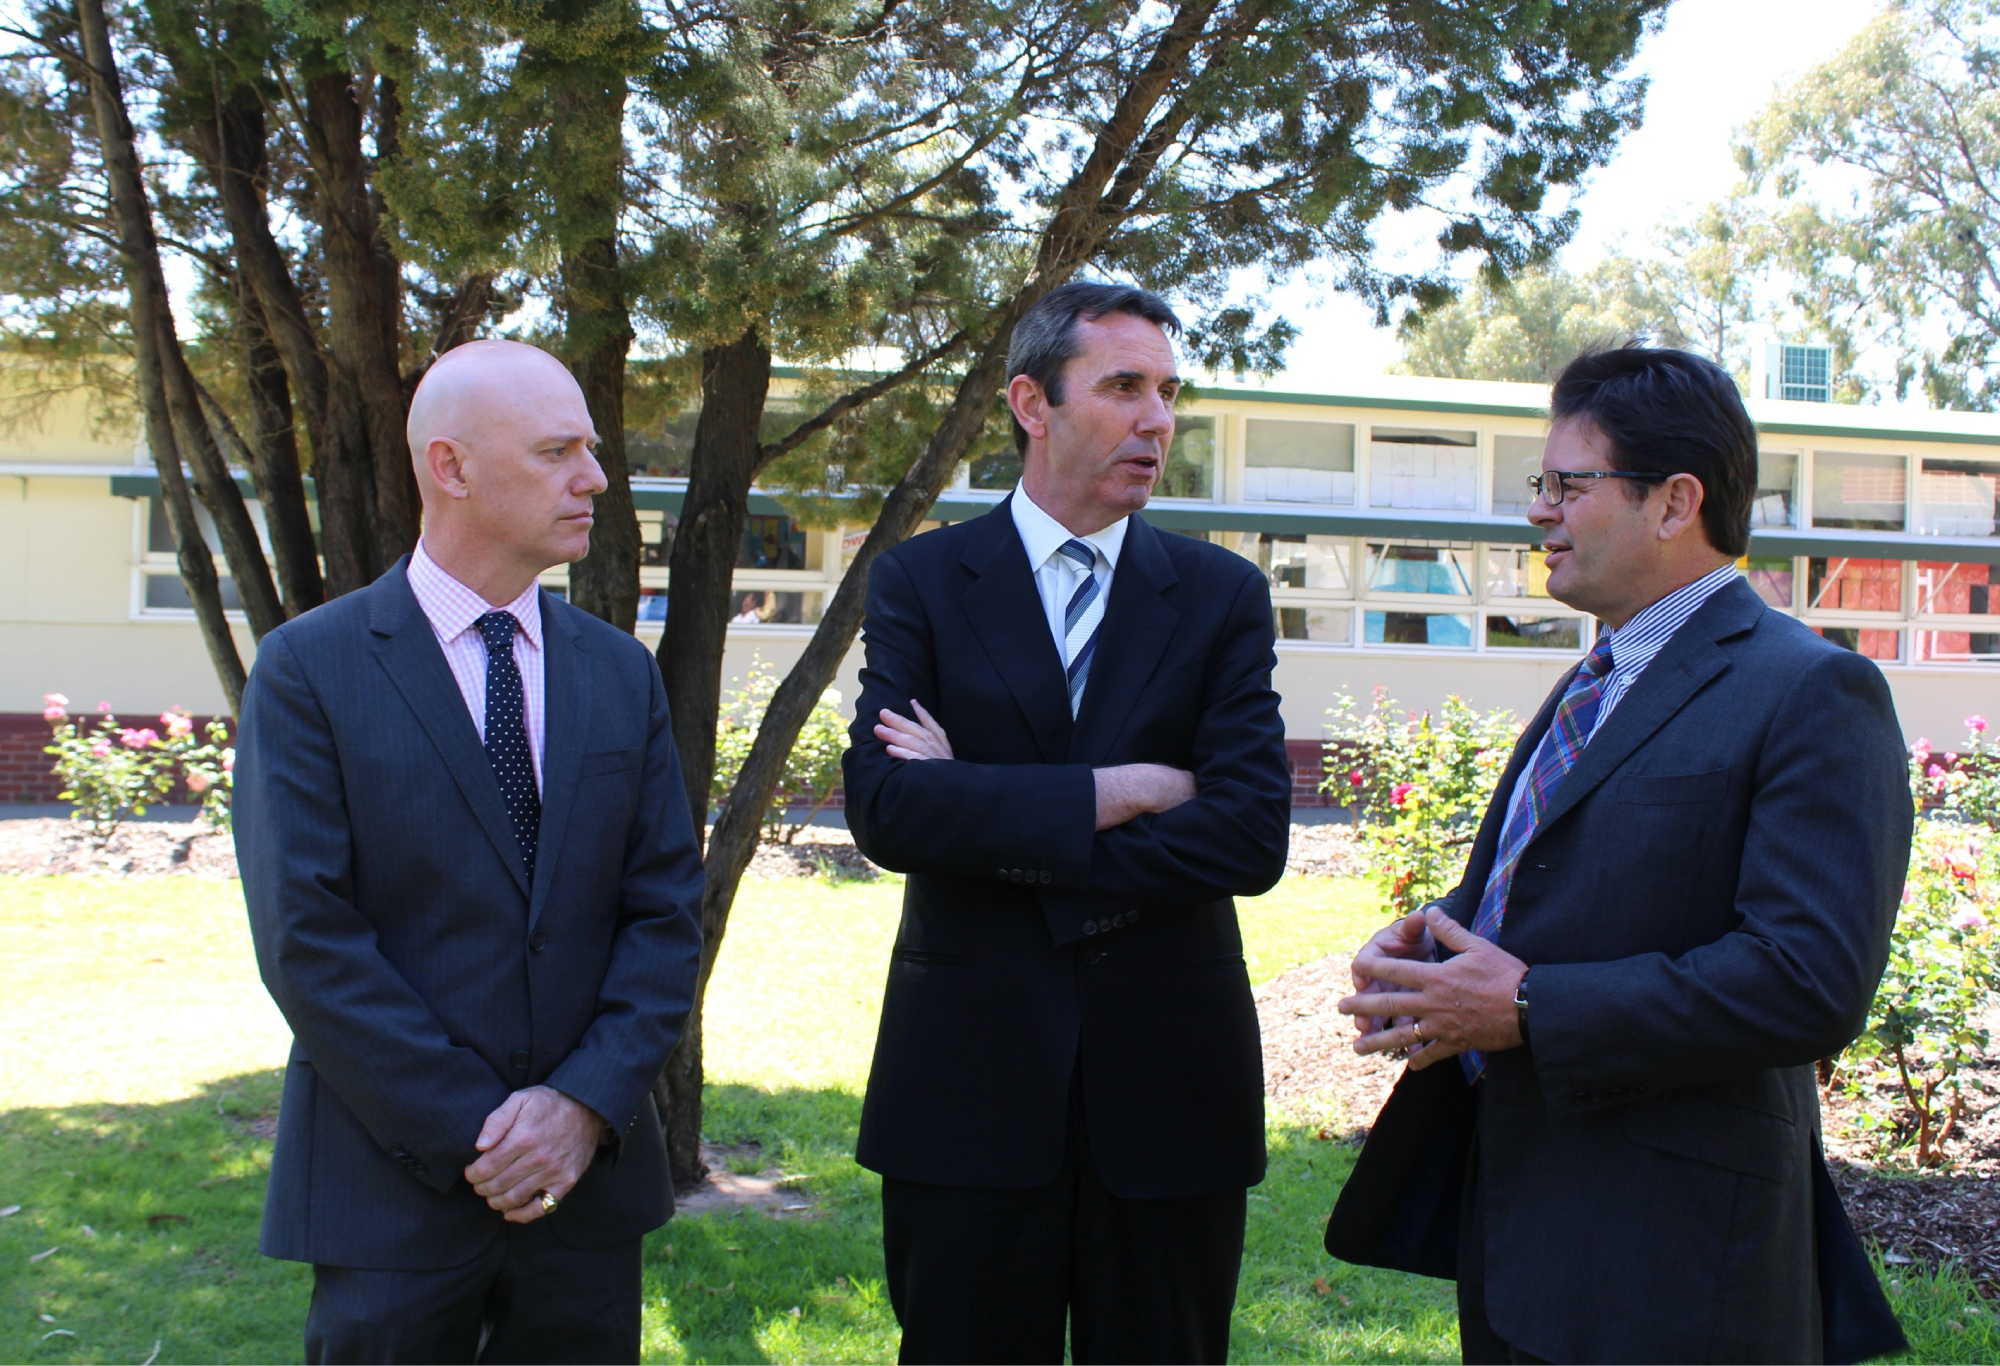 Churchlands MLA Sean L'Estrange, Education Minister Peter Collier and Town of Cambridge Mayor Simon Withers at the announcement this morning.